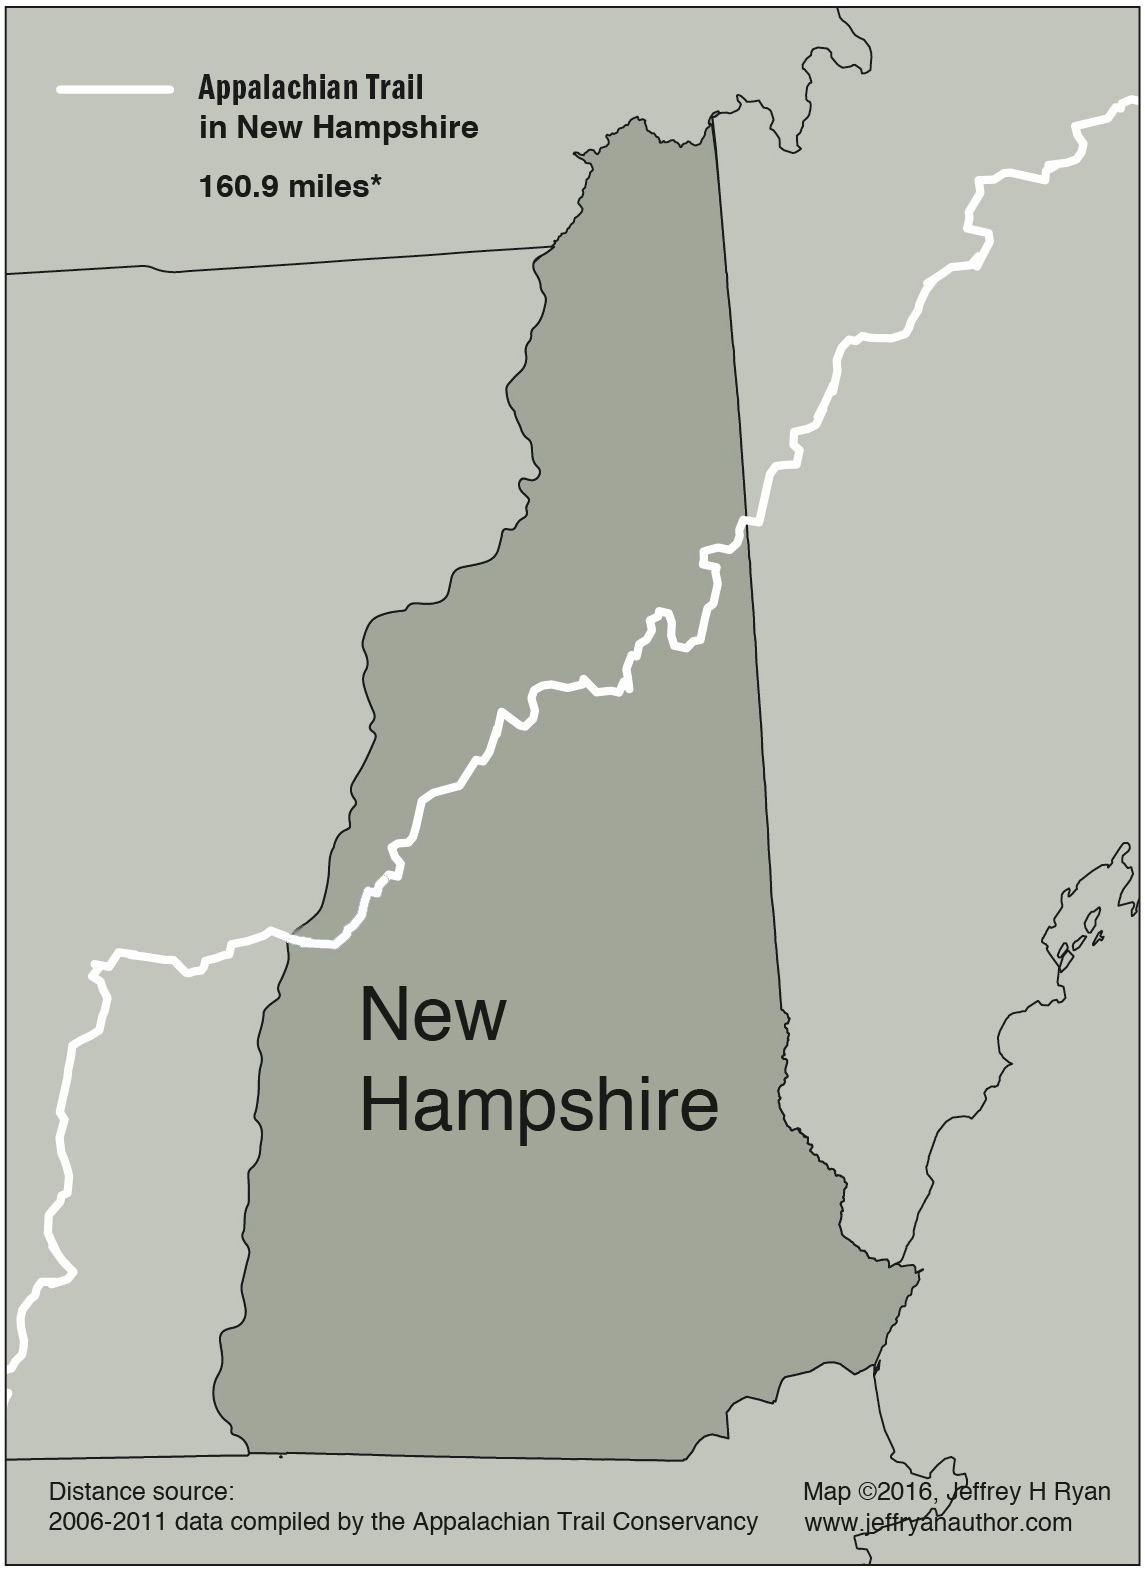 Map of Appalachian Trail in New Hampshire - Jeff Ryan, Author & Speaker